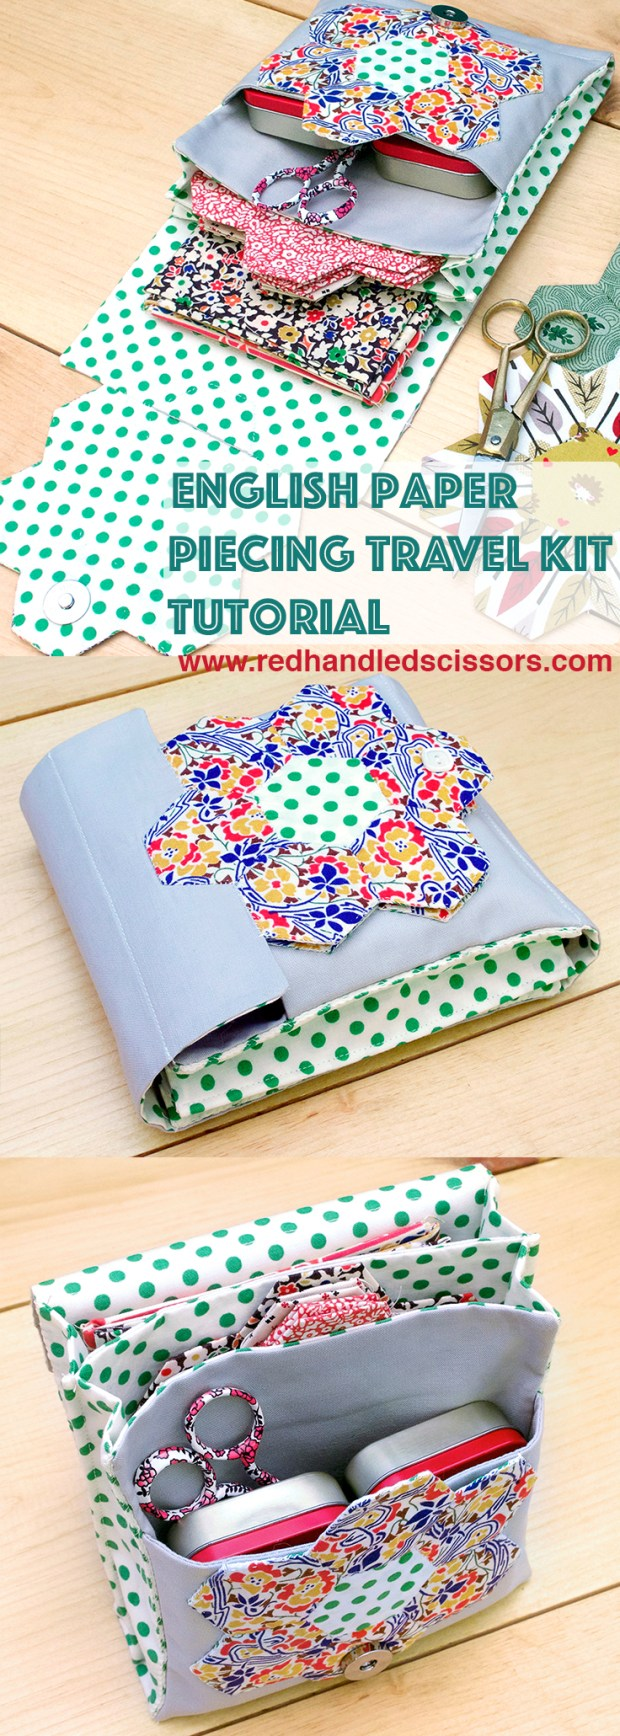 Tutorial: English Paper Piecing Travel Kit, Hexies Part 3: Hexie obsessed? Get your quilting fix on the go with part 3 of my English Paper Piecing tutorial series: the English paper piecing travel kit!